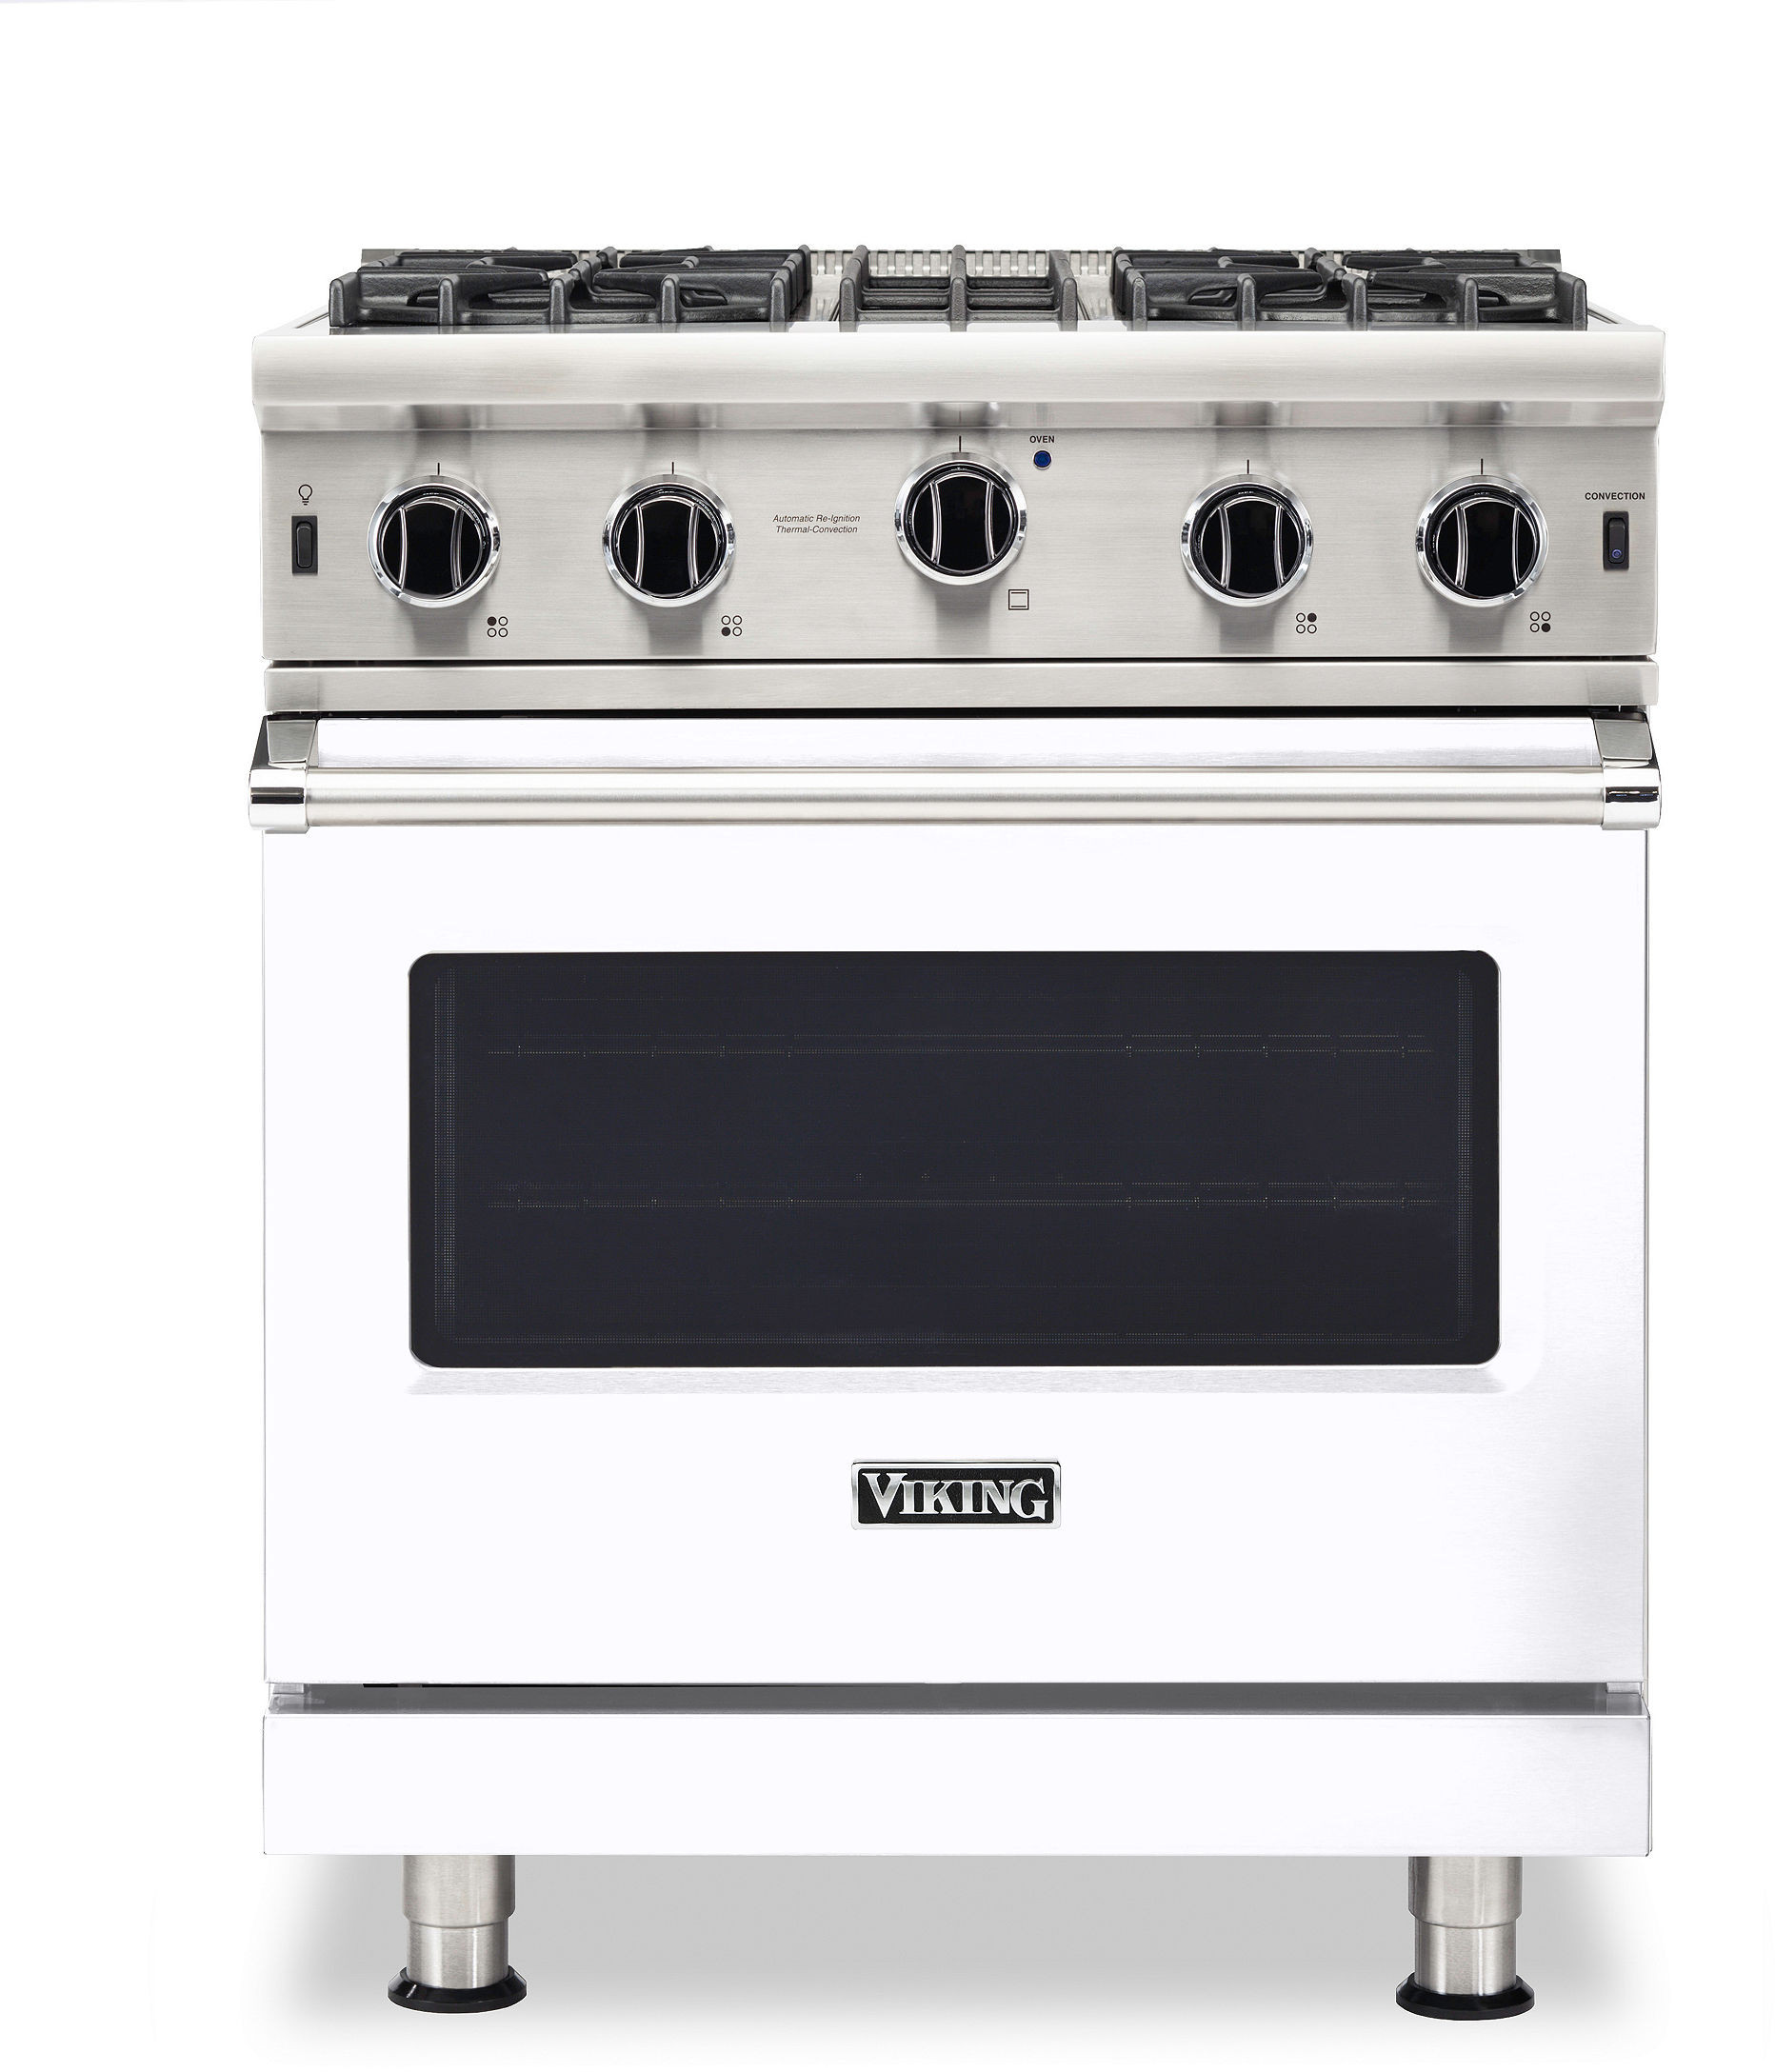 Viking Vgic53024bwh 30 Inch Freestanding Professional Gas Range With 4 Open Burners 4 Cu Ft Oven Capacity Continuous Grates Manual Clean Surespark Ignition System Proflow Convection Air Baffle And Varisimmer Setting White Natural Gas